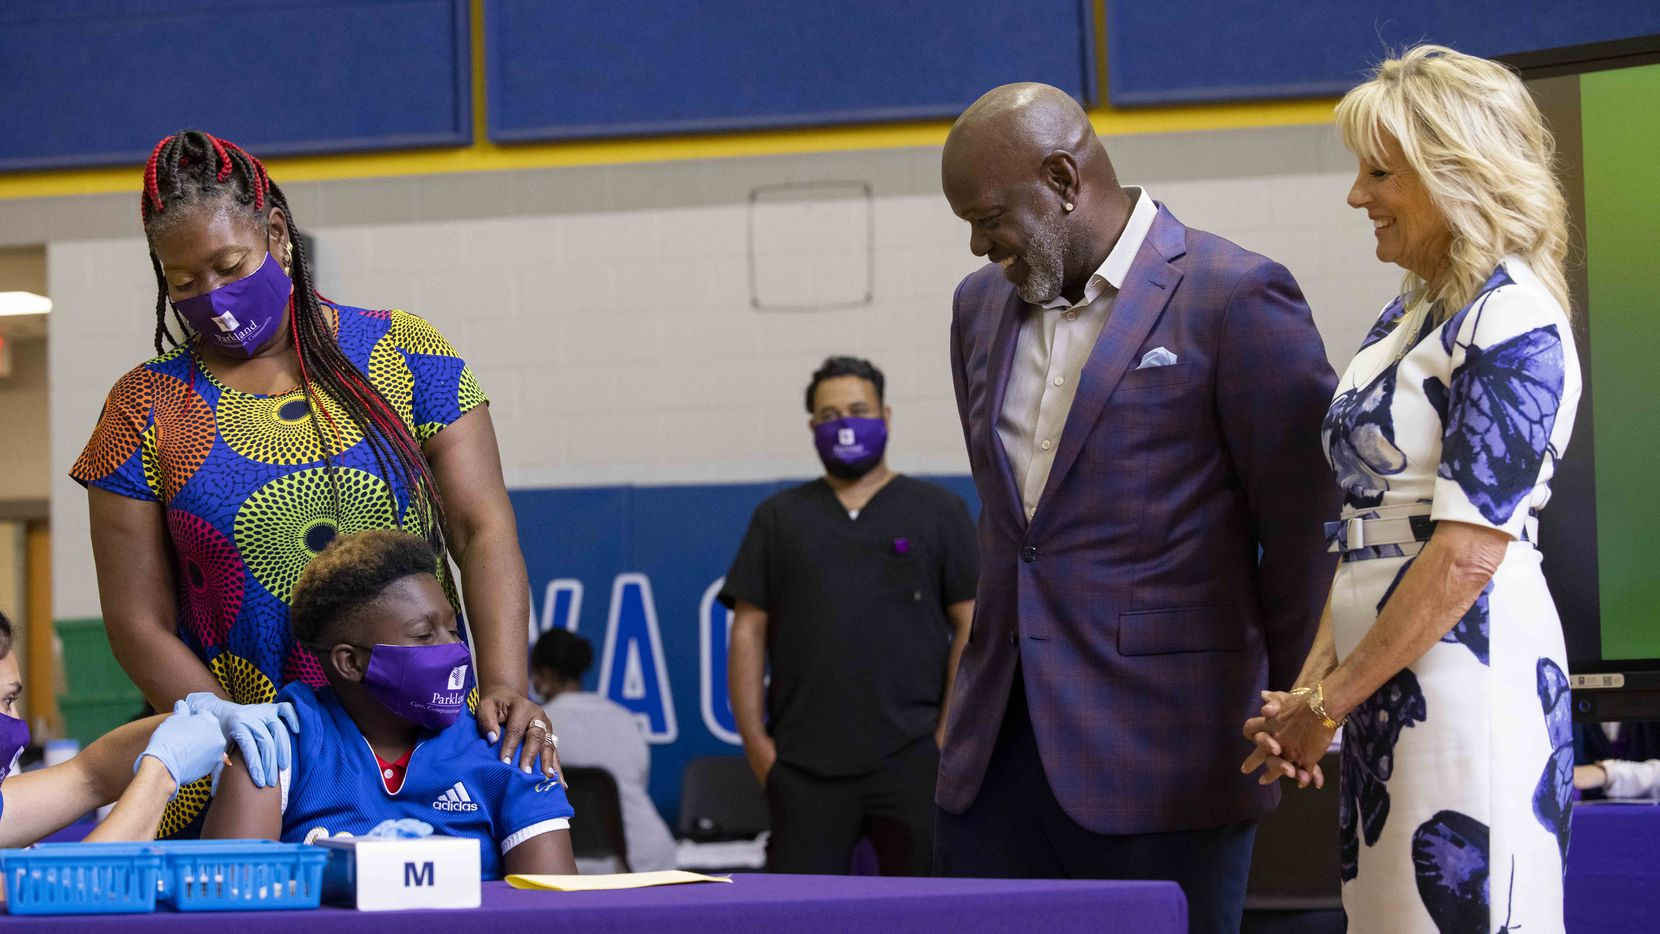 First lady Jill Biden and Dallas Cowboys legend Emmitt Smith watched as Ramona Williams held son Chase Walton as he received the COVID-19 vaccine June 29 during a tour of the vaccination site at Emmett J. Conrad High School in Dallas.